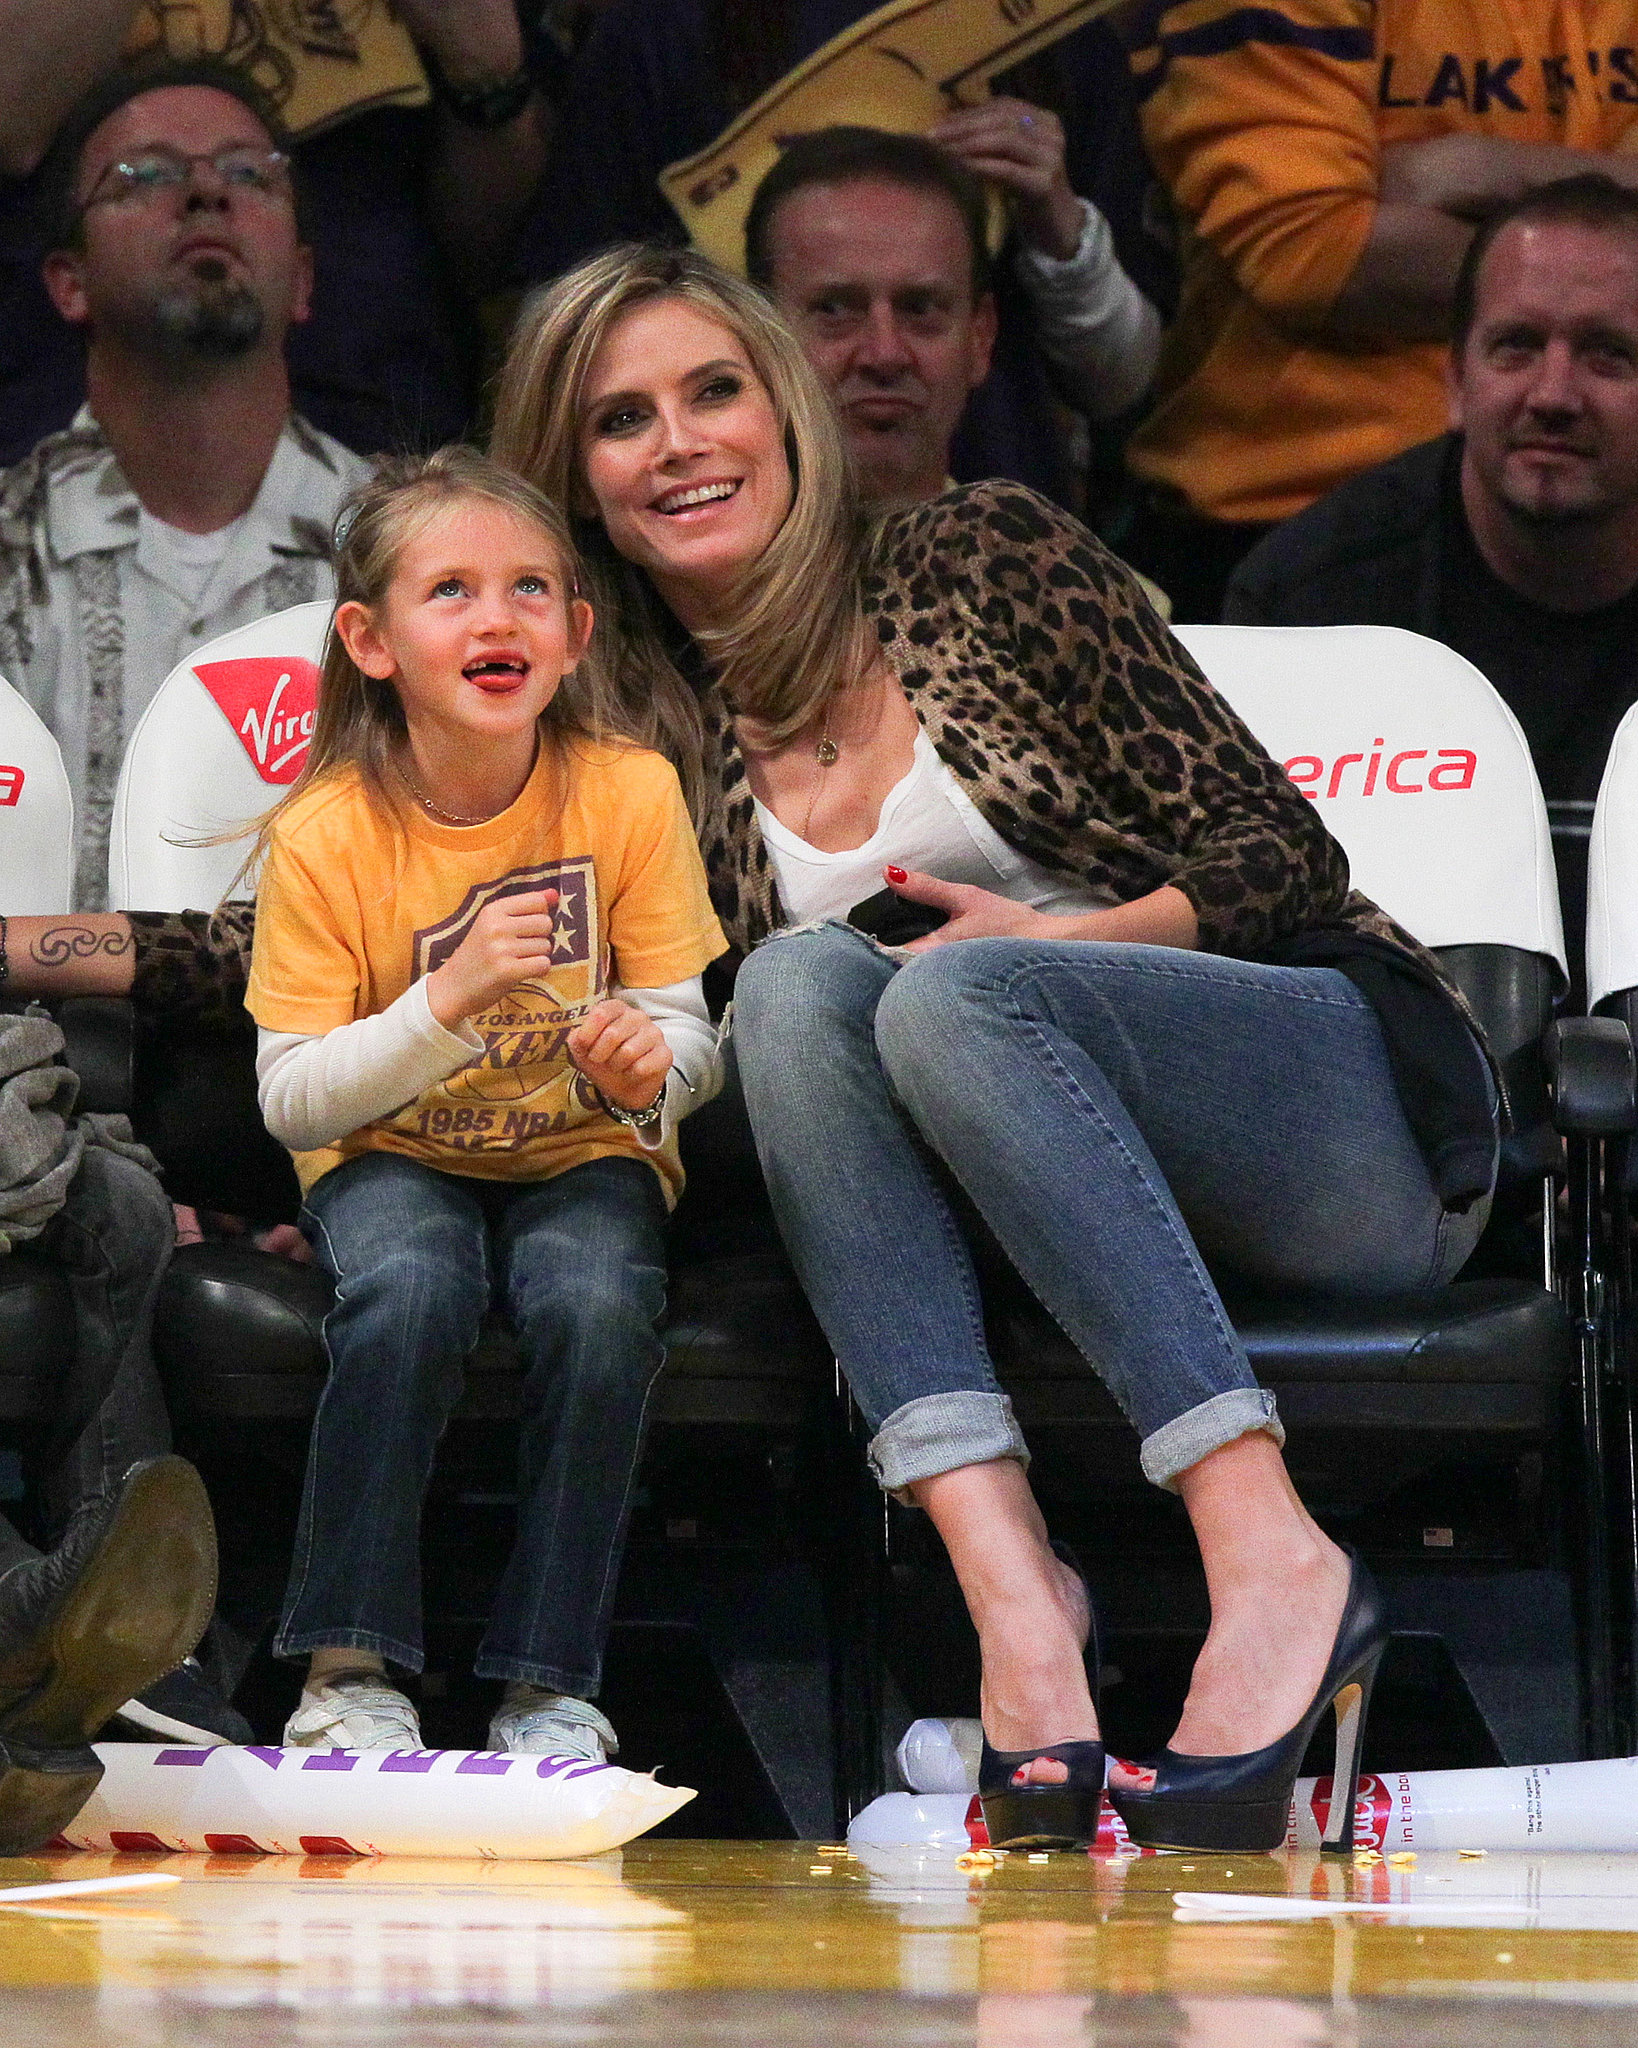 Heidi Klum and her daughter Leni Samuel watched the Lakers play the New Orleans Hornets in Januar